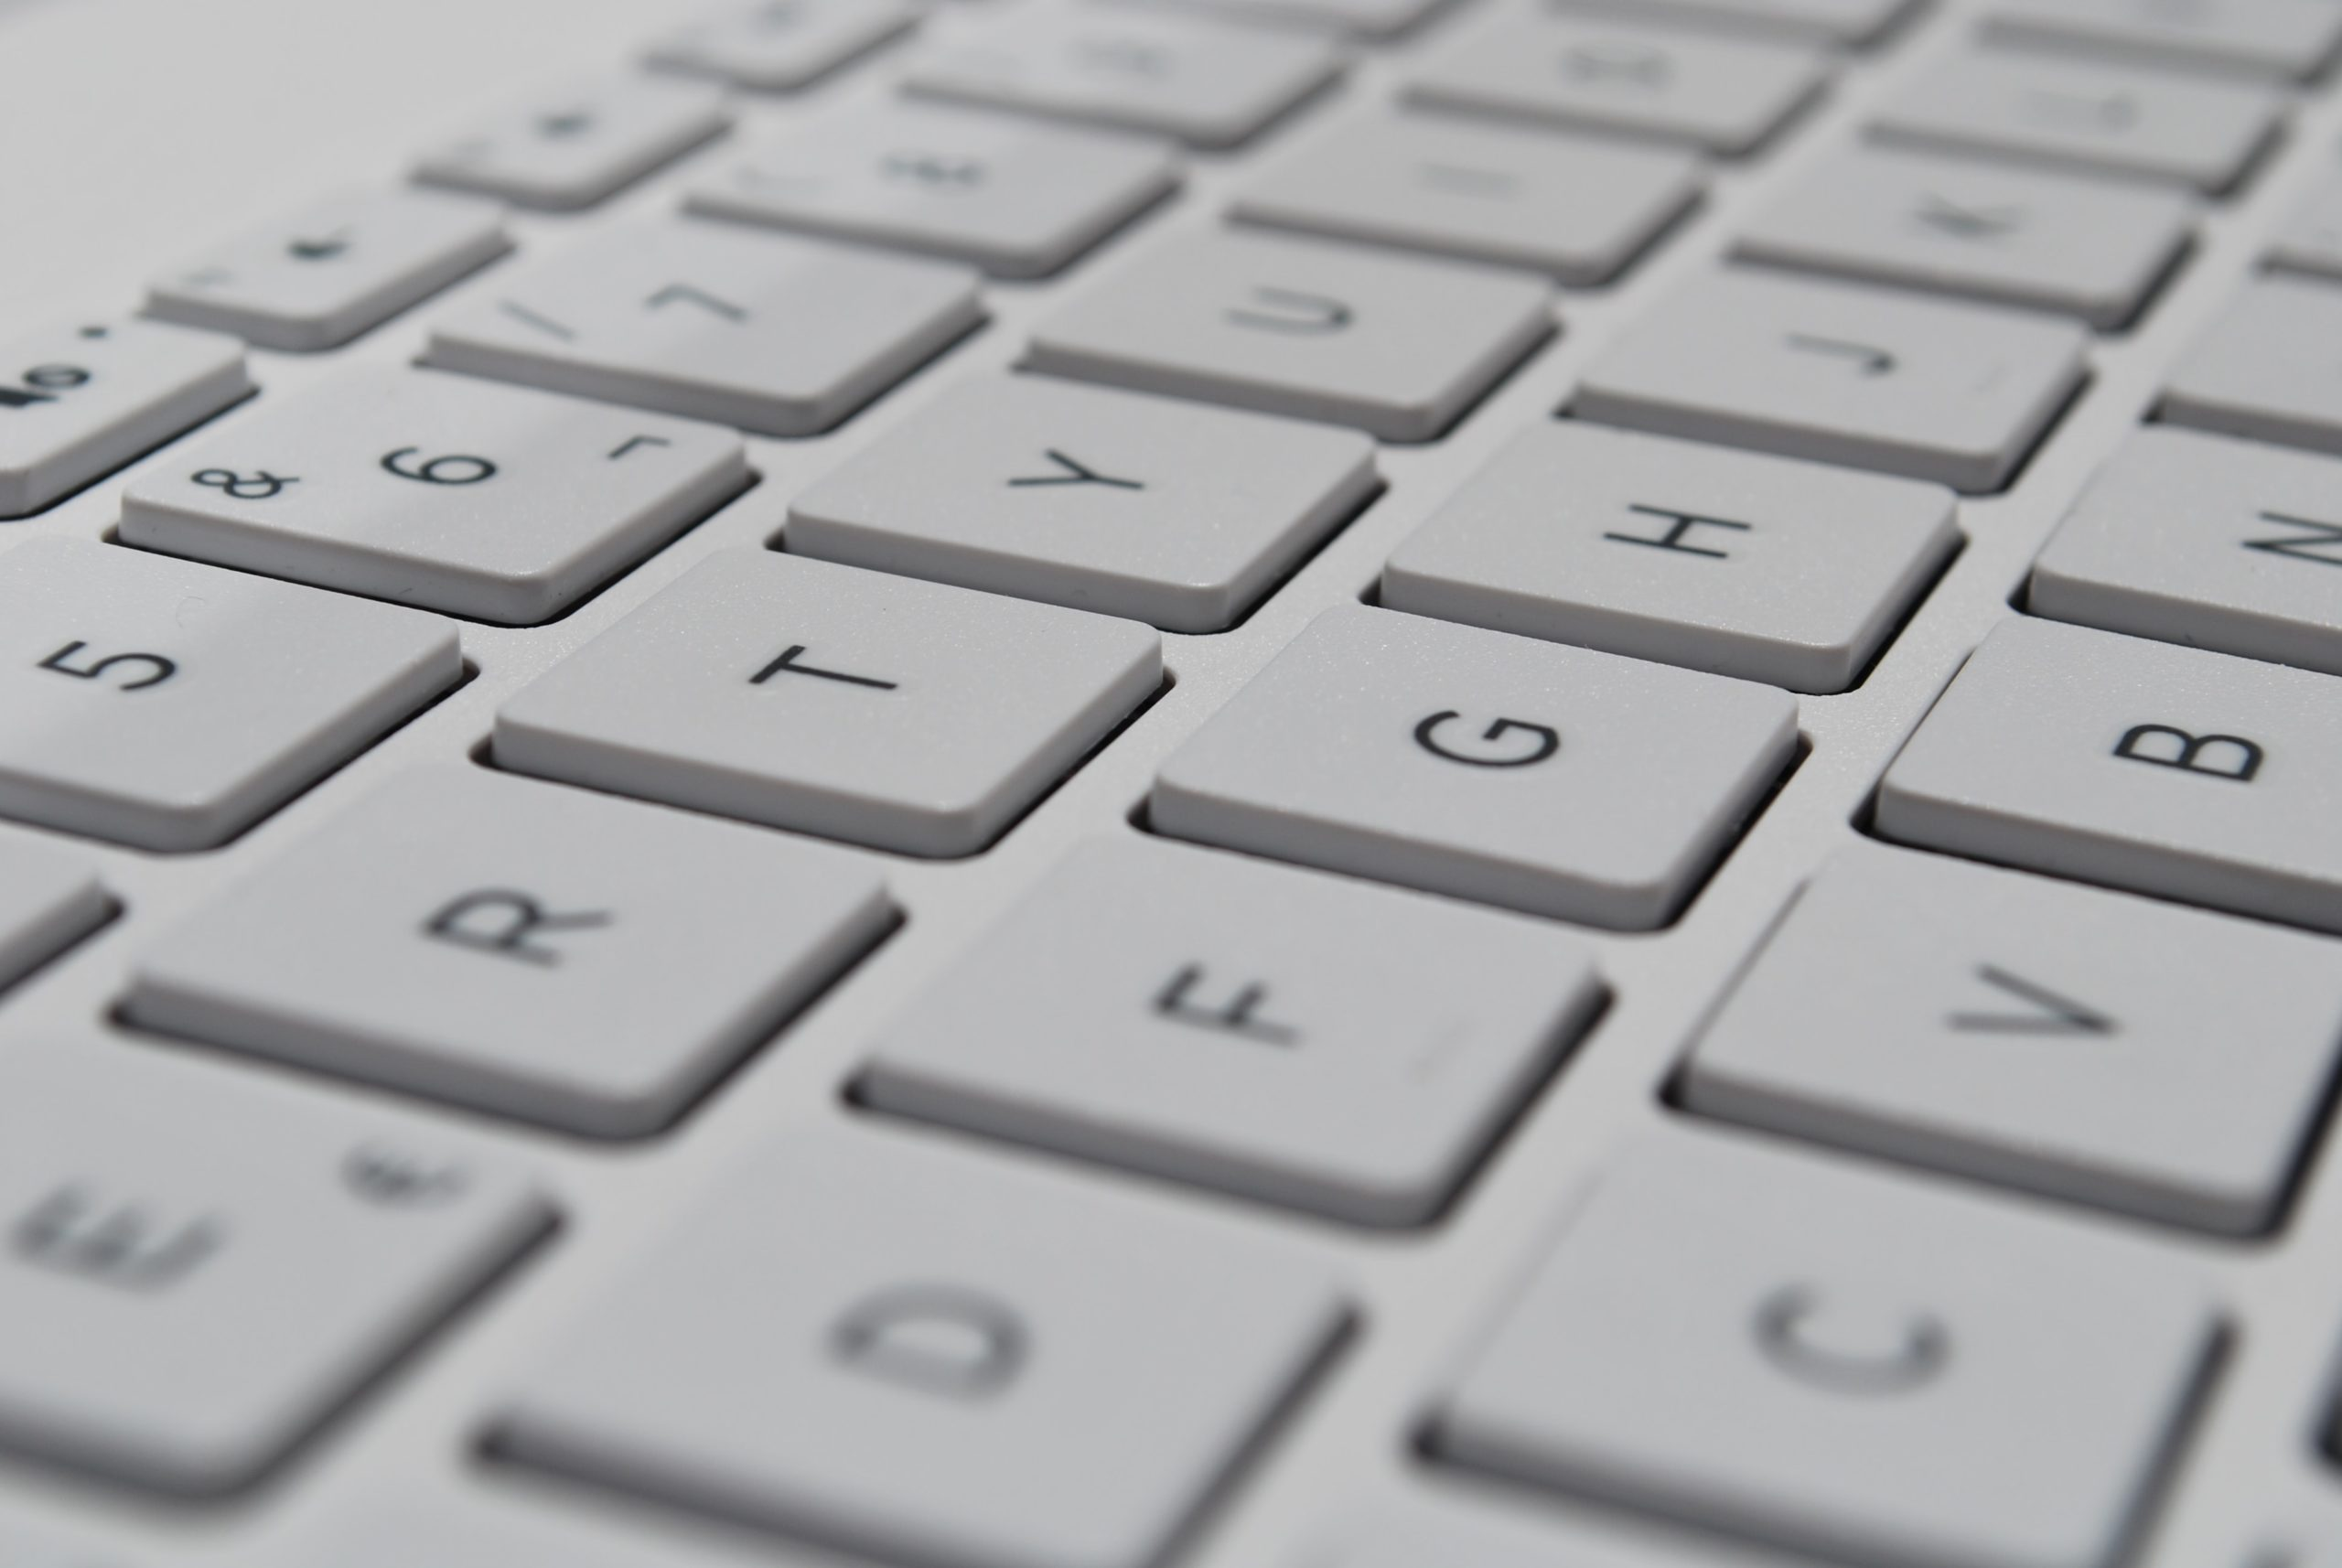 Best Keyboards For Writers Our Top Ten Picks